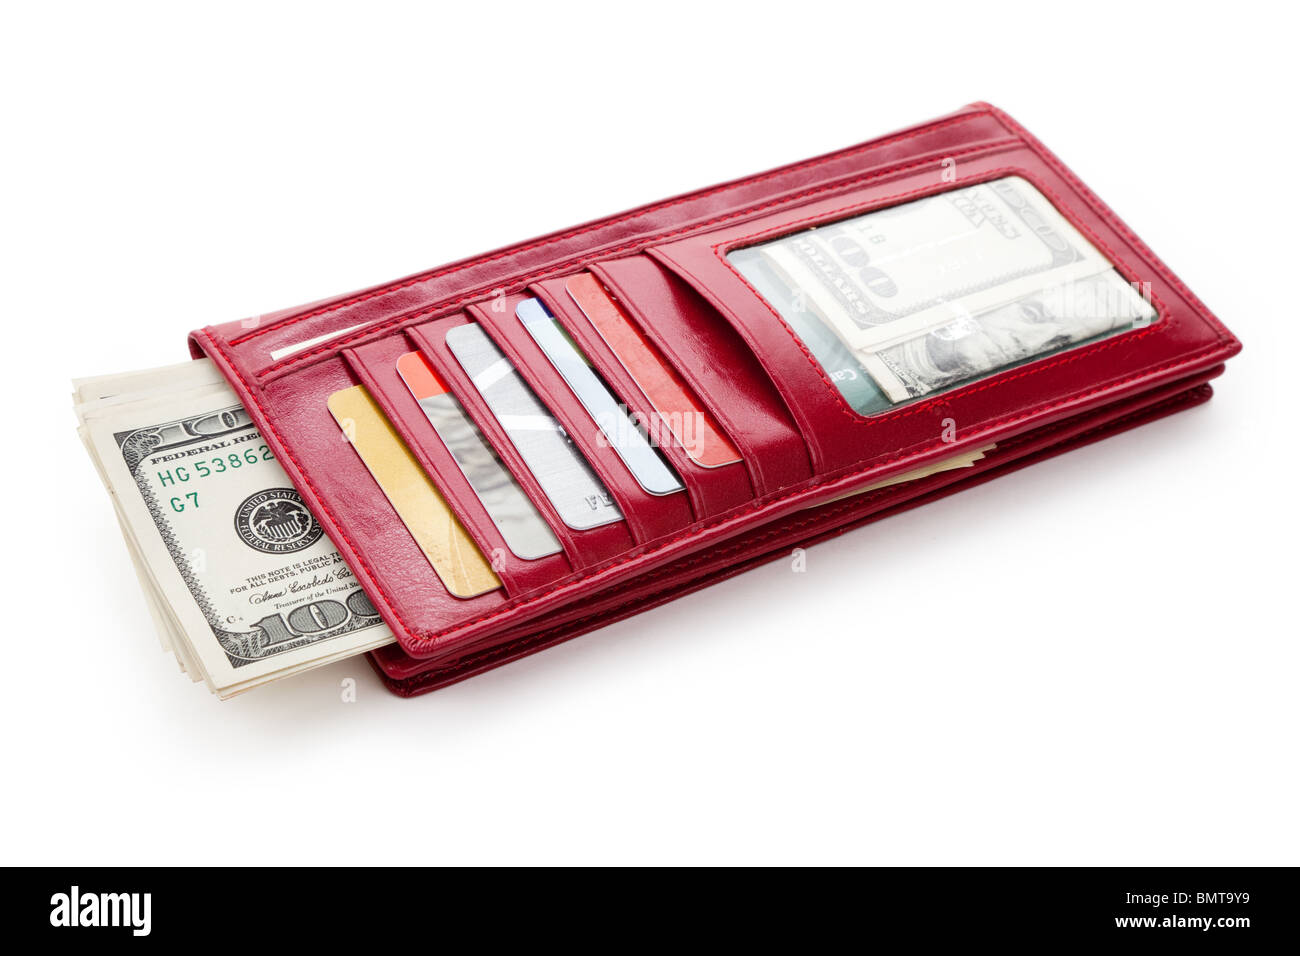 Red Wallet with money and Credit Card - Stock Image